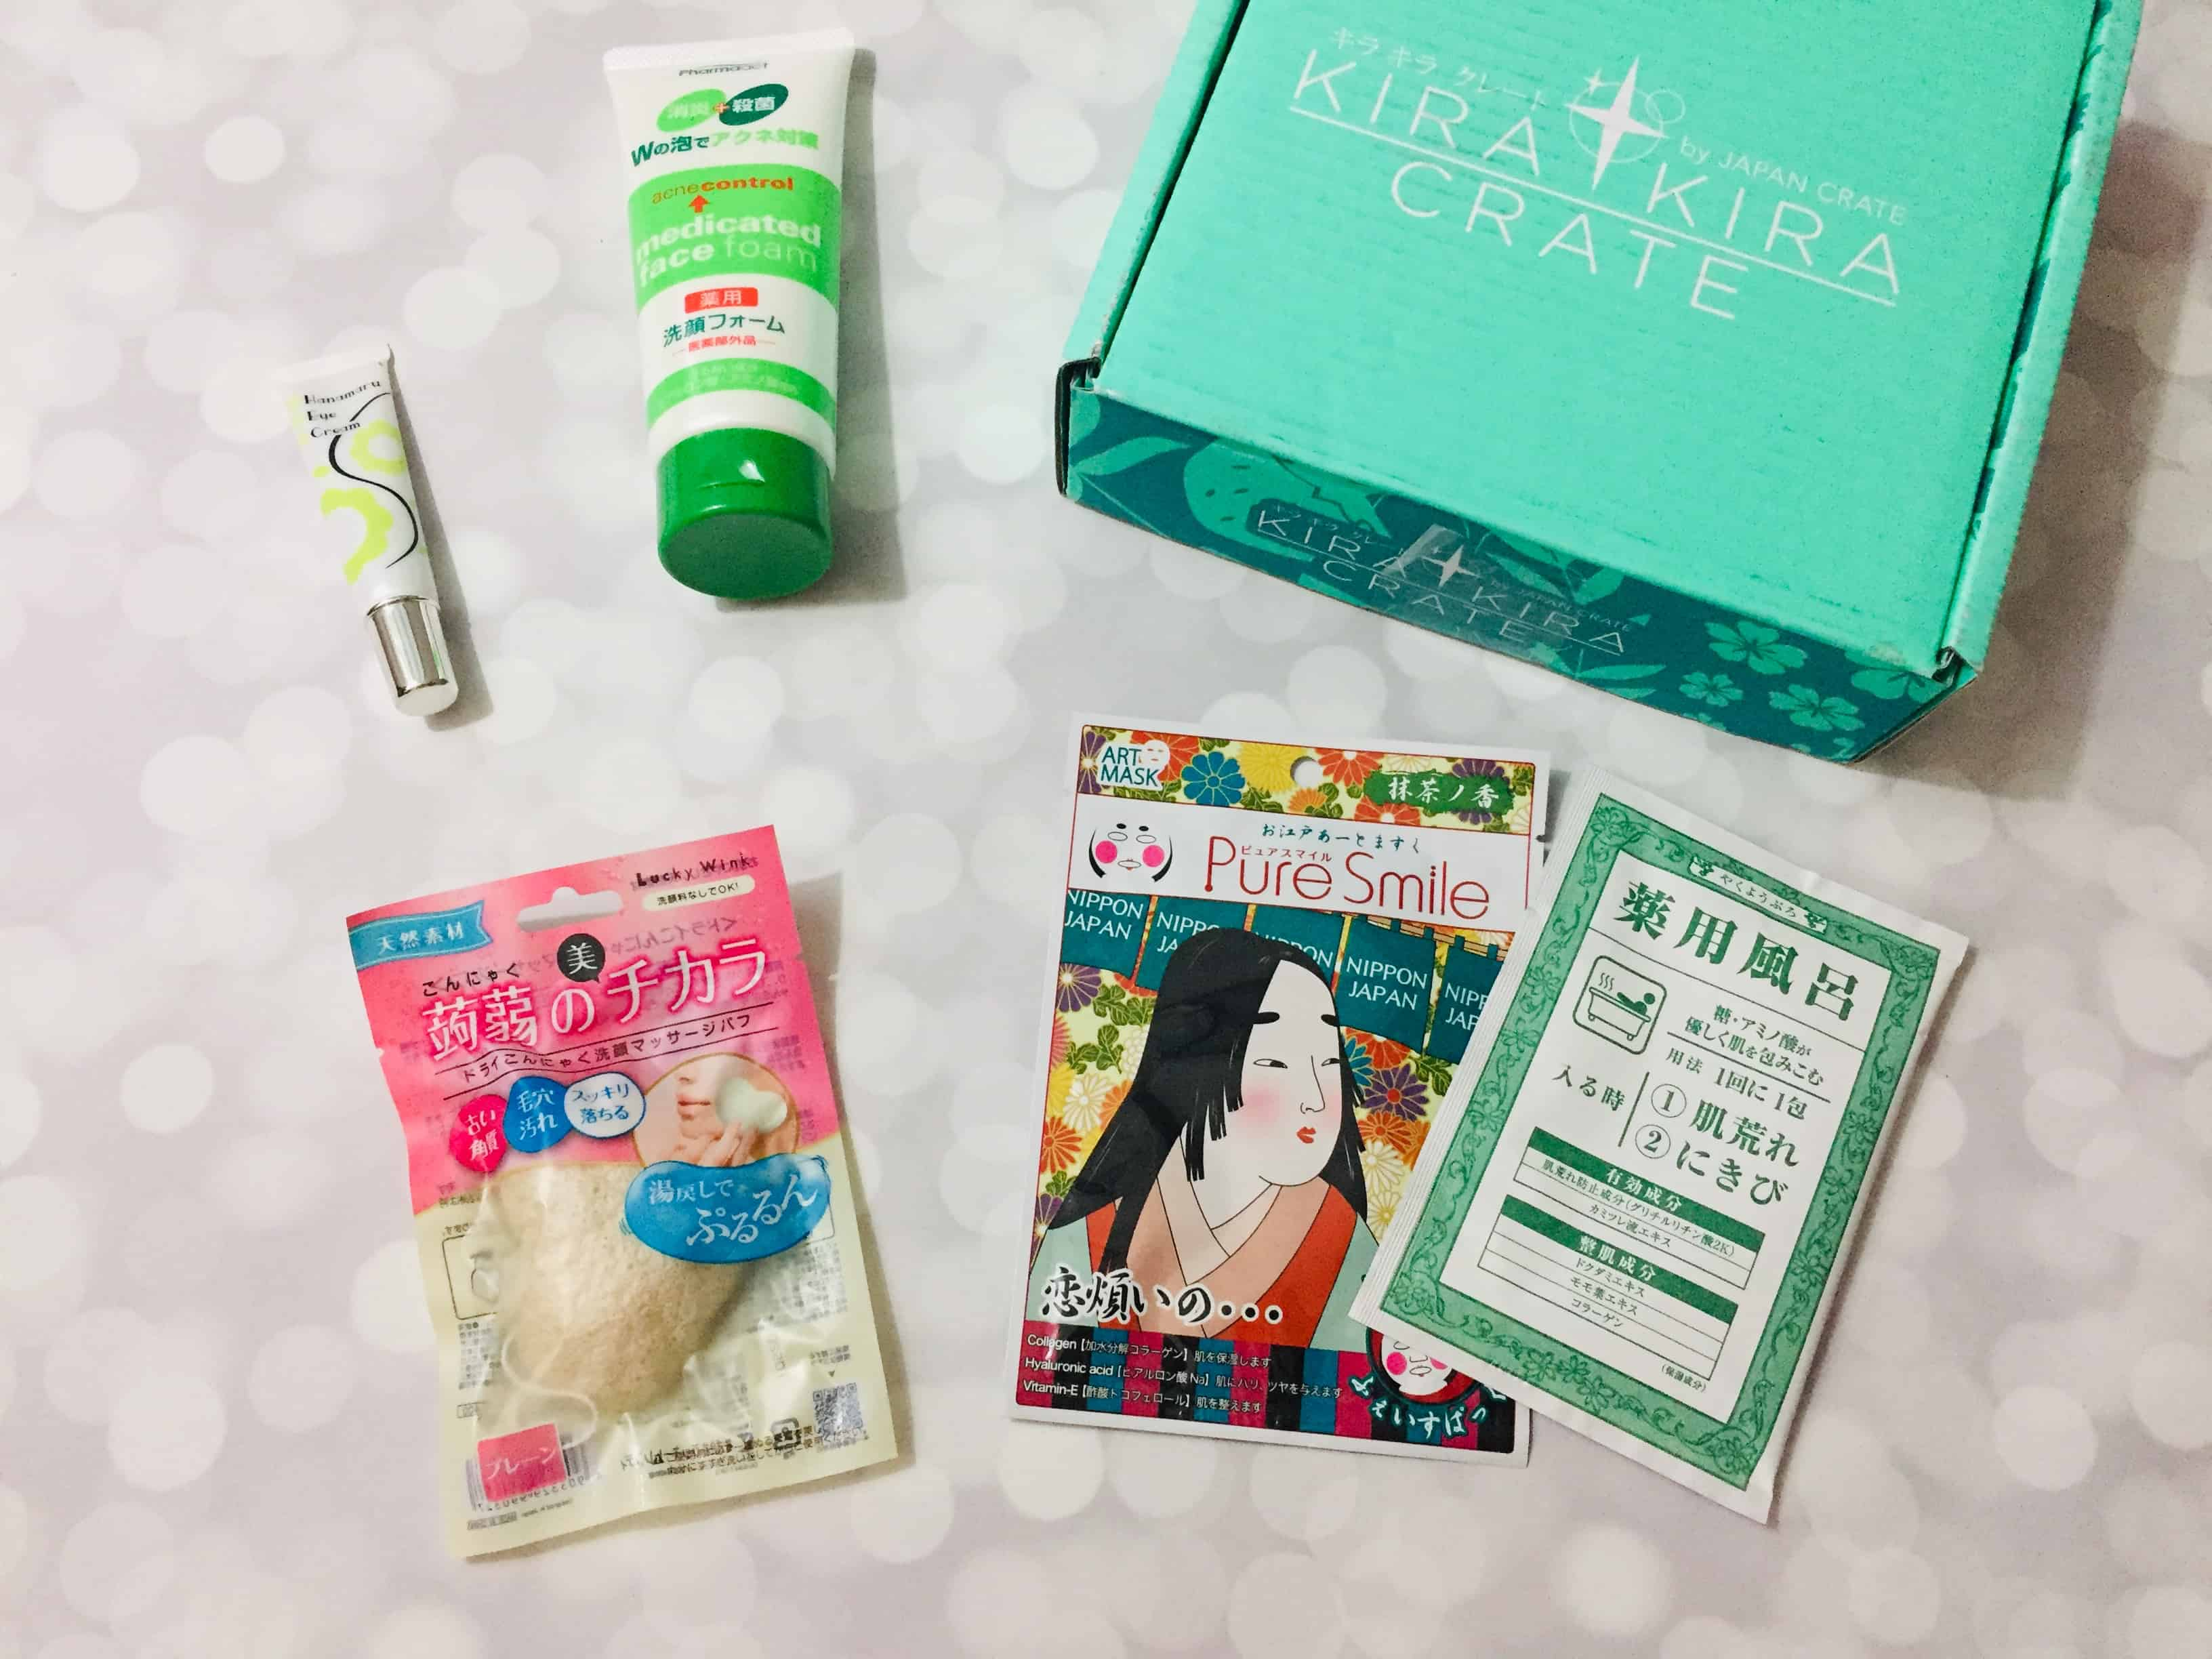 Kira Kira Crate October 2018 Subscription Box Review + Coupon